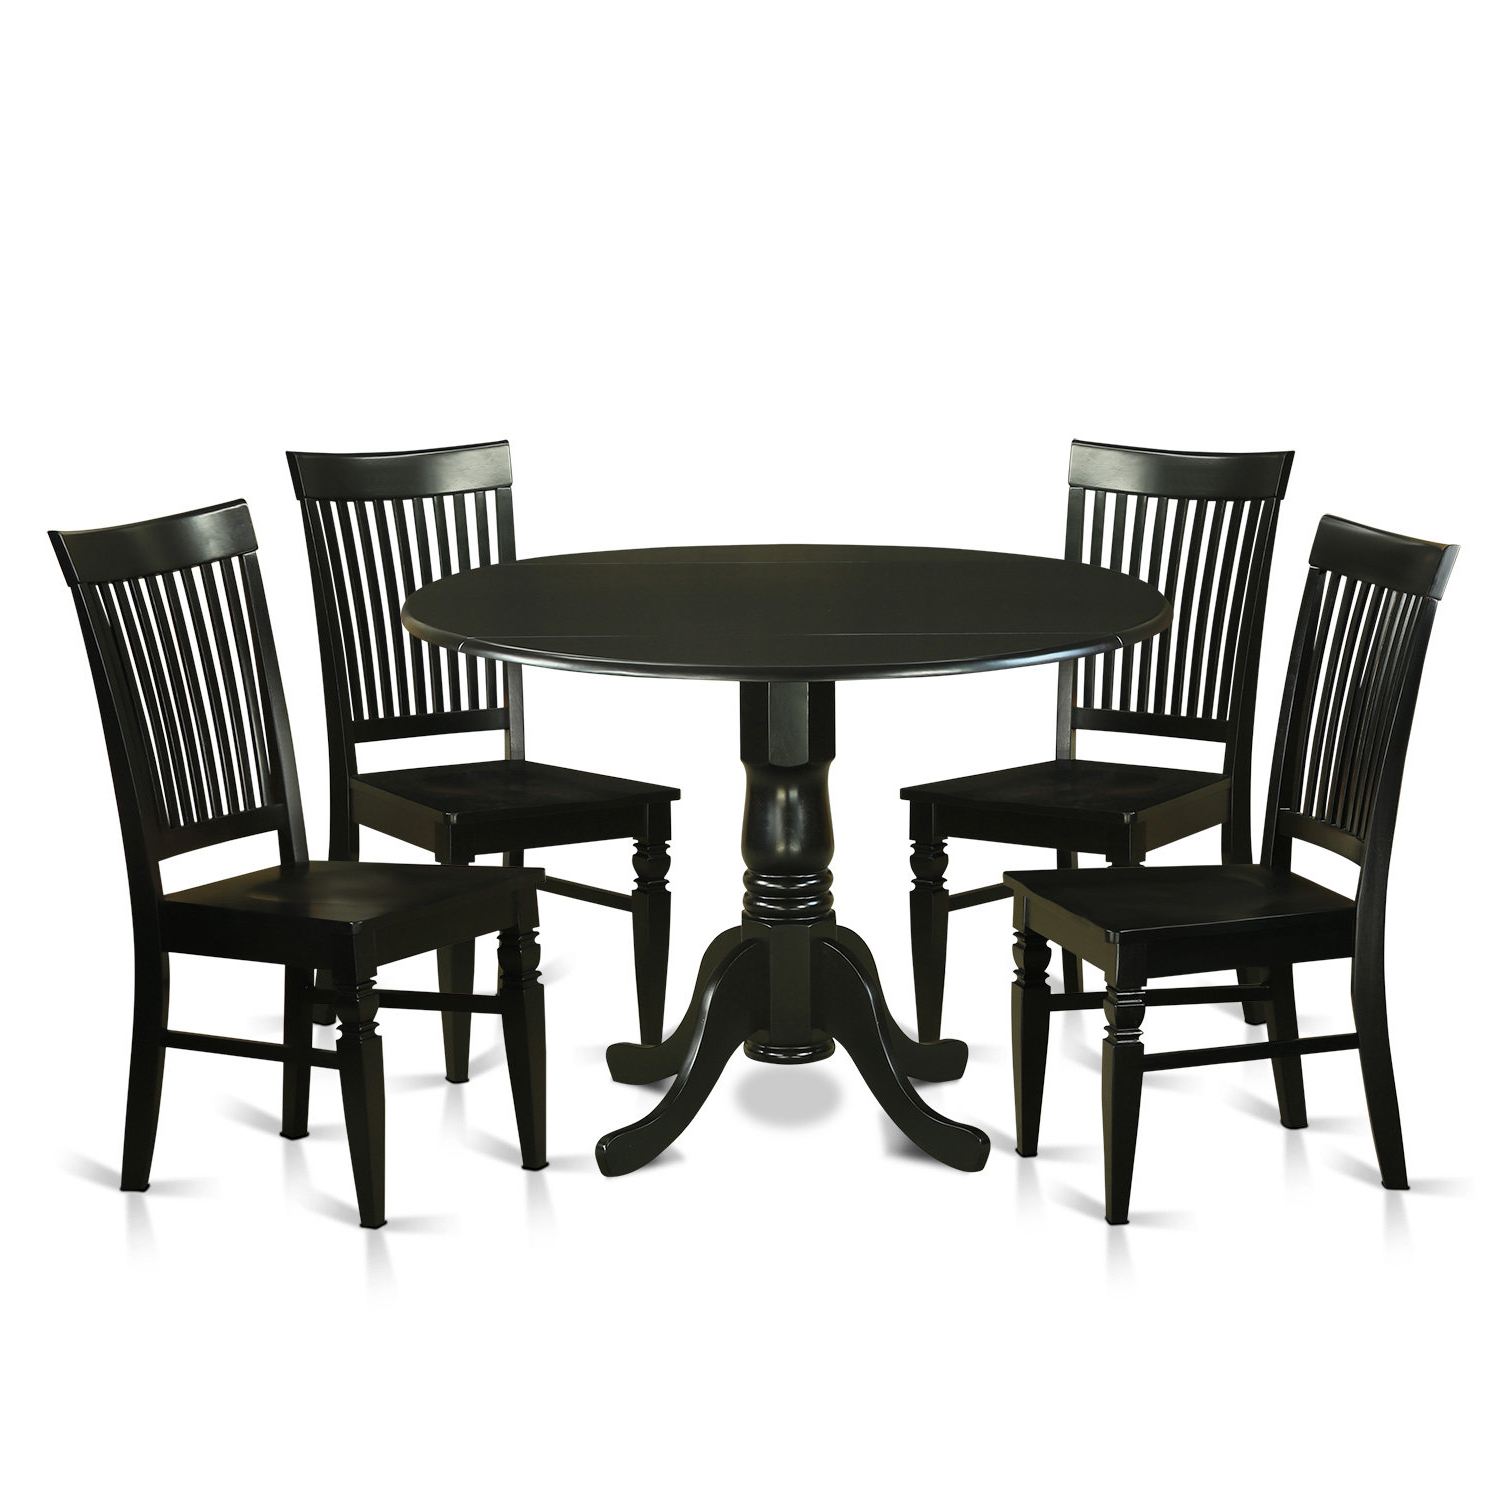 Most Recent Spruill 5 Piece Drop Leaf Solid Wood Wood Dining Set Throughout Pattonsburg 5 Piece Dining Sets (View 17 of 20)